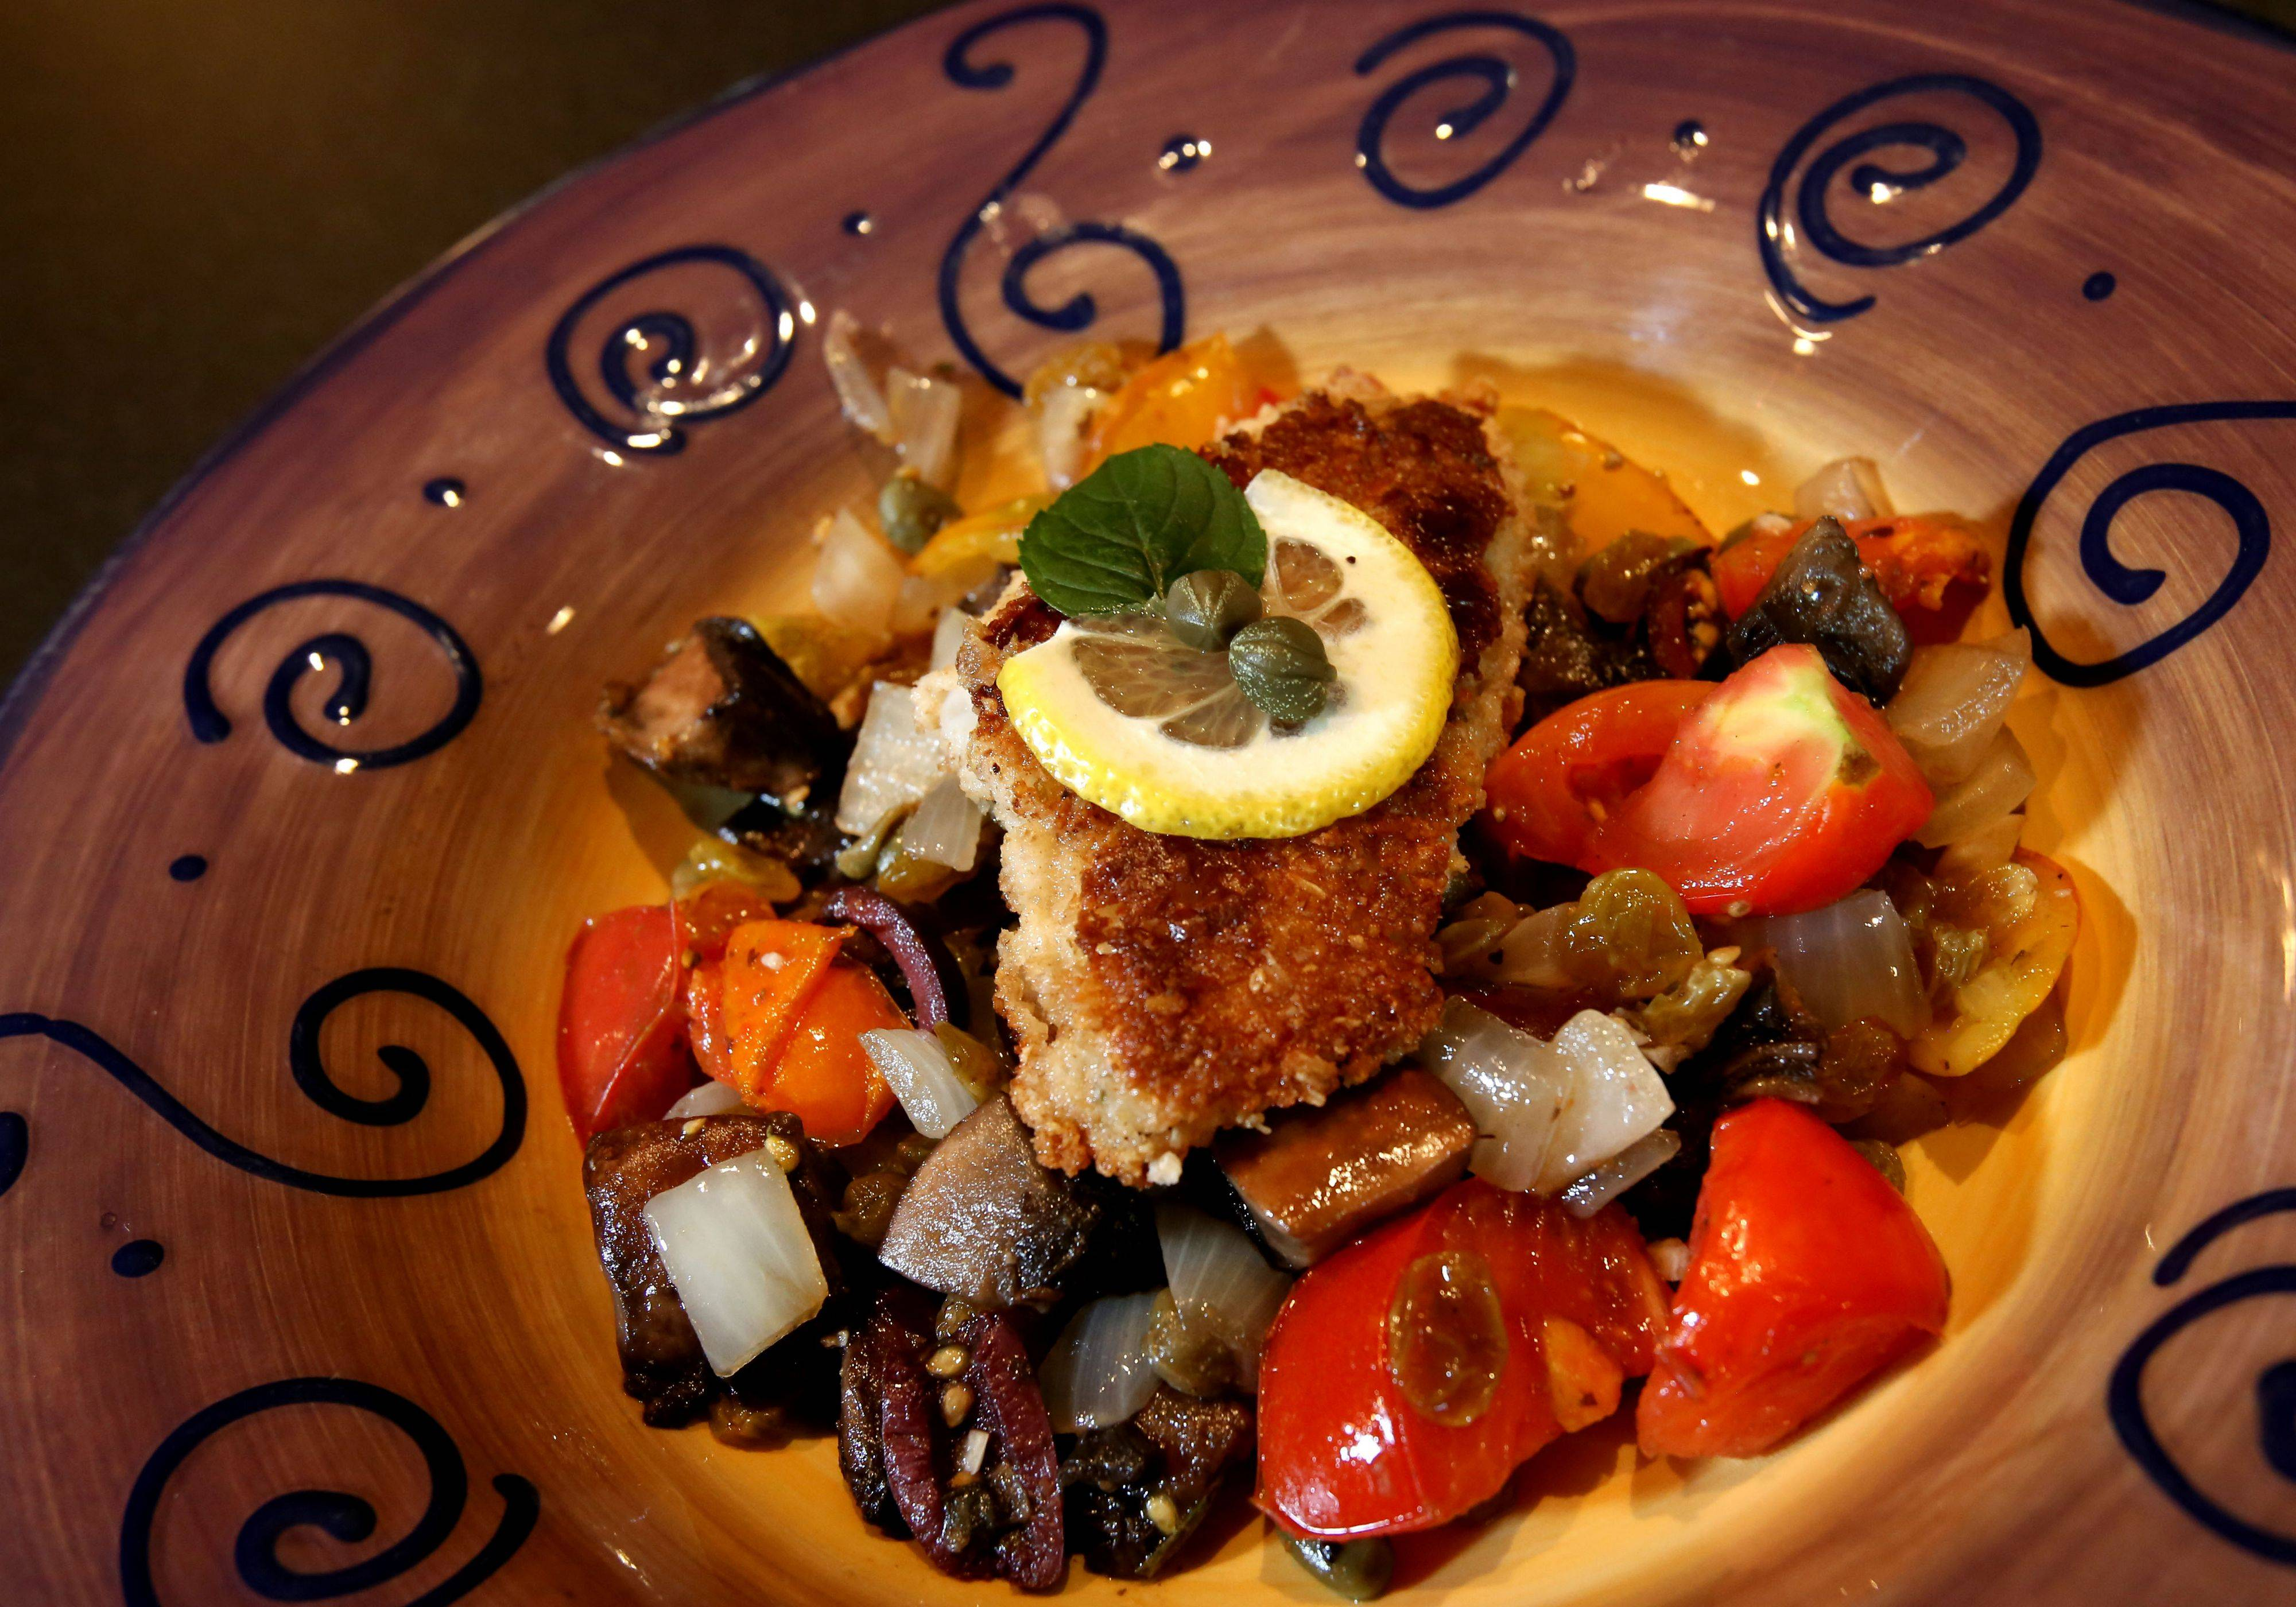 Lori Motyka won the cod, portobello and dried current challenge with this Mediterranean-inspired dish.